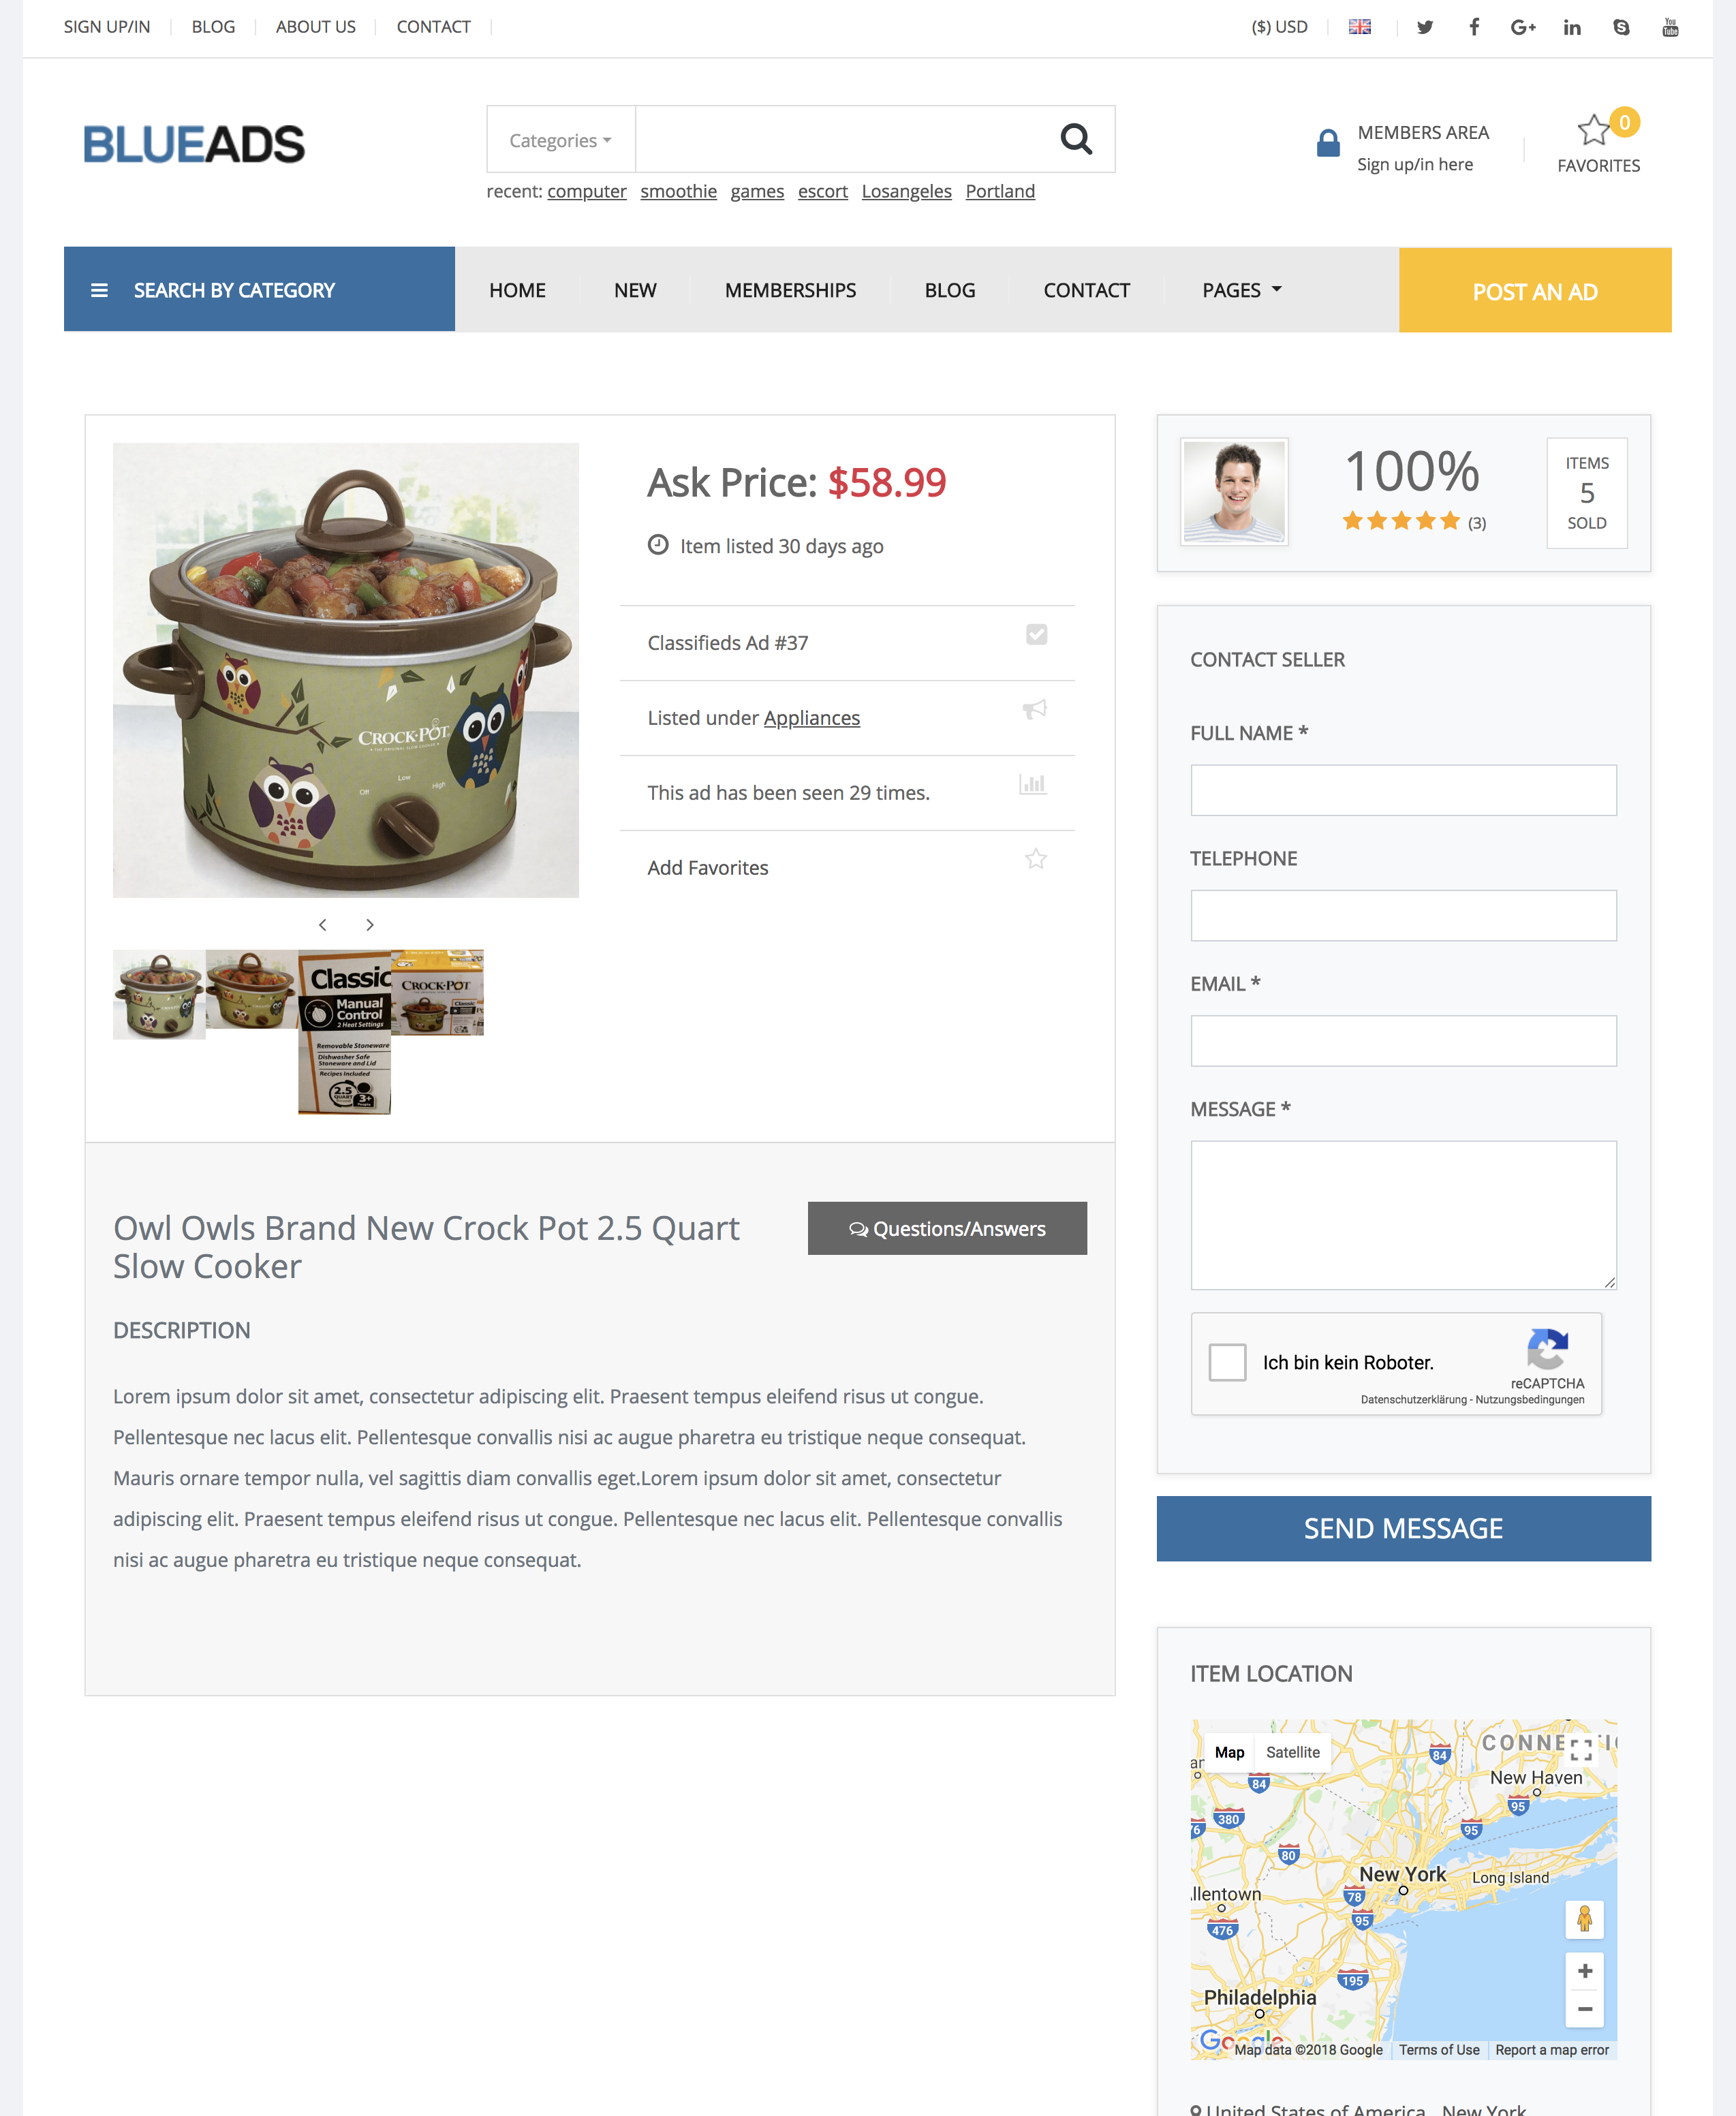 PremiumPress: New BlueAds Child Theme For The Classifieds